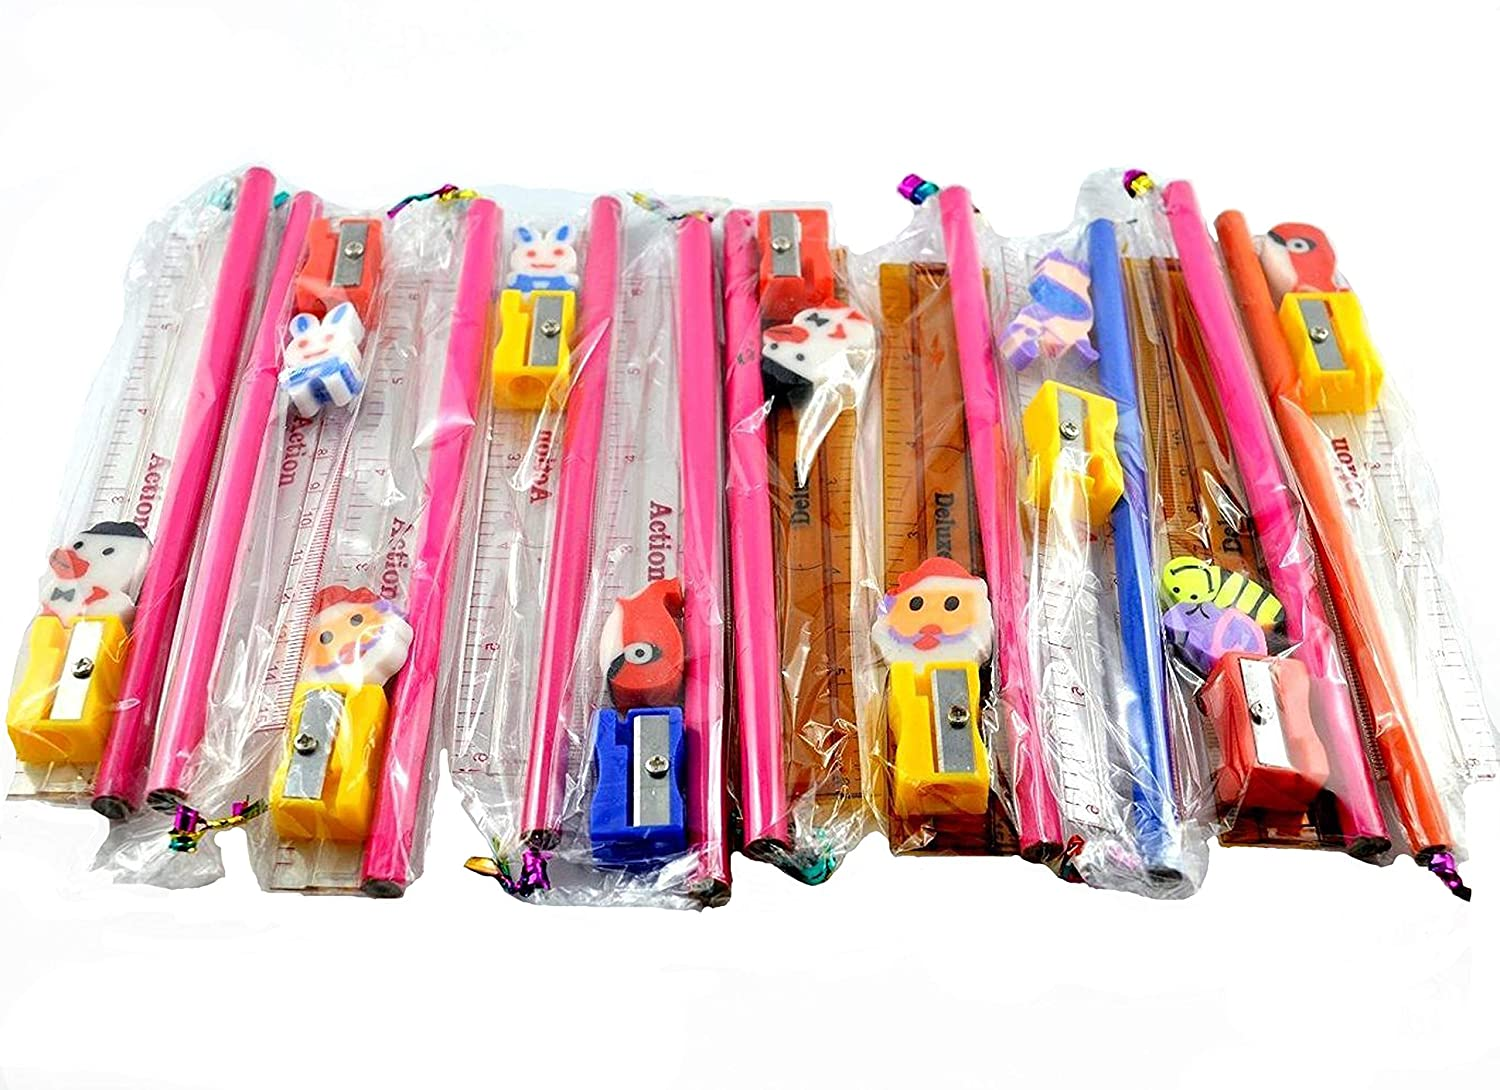 New Food Learing Eraser Beautiful Pencil Rubber Kids School Stationary Gift Set